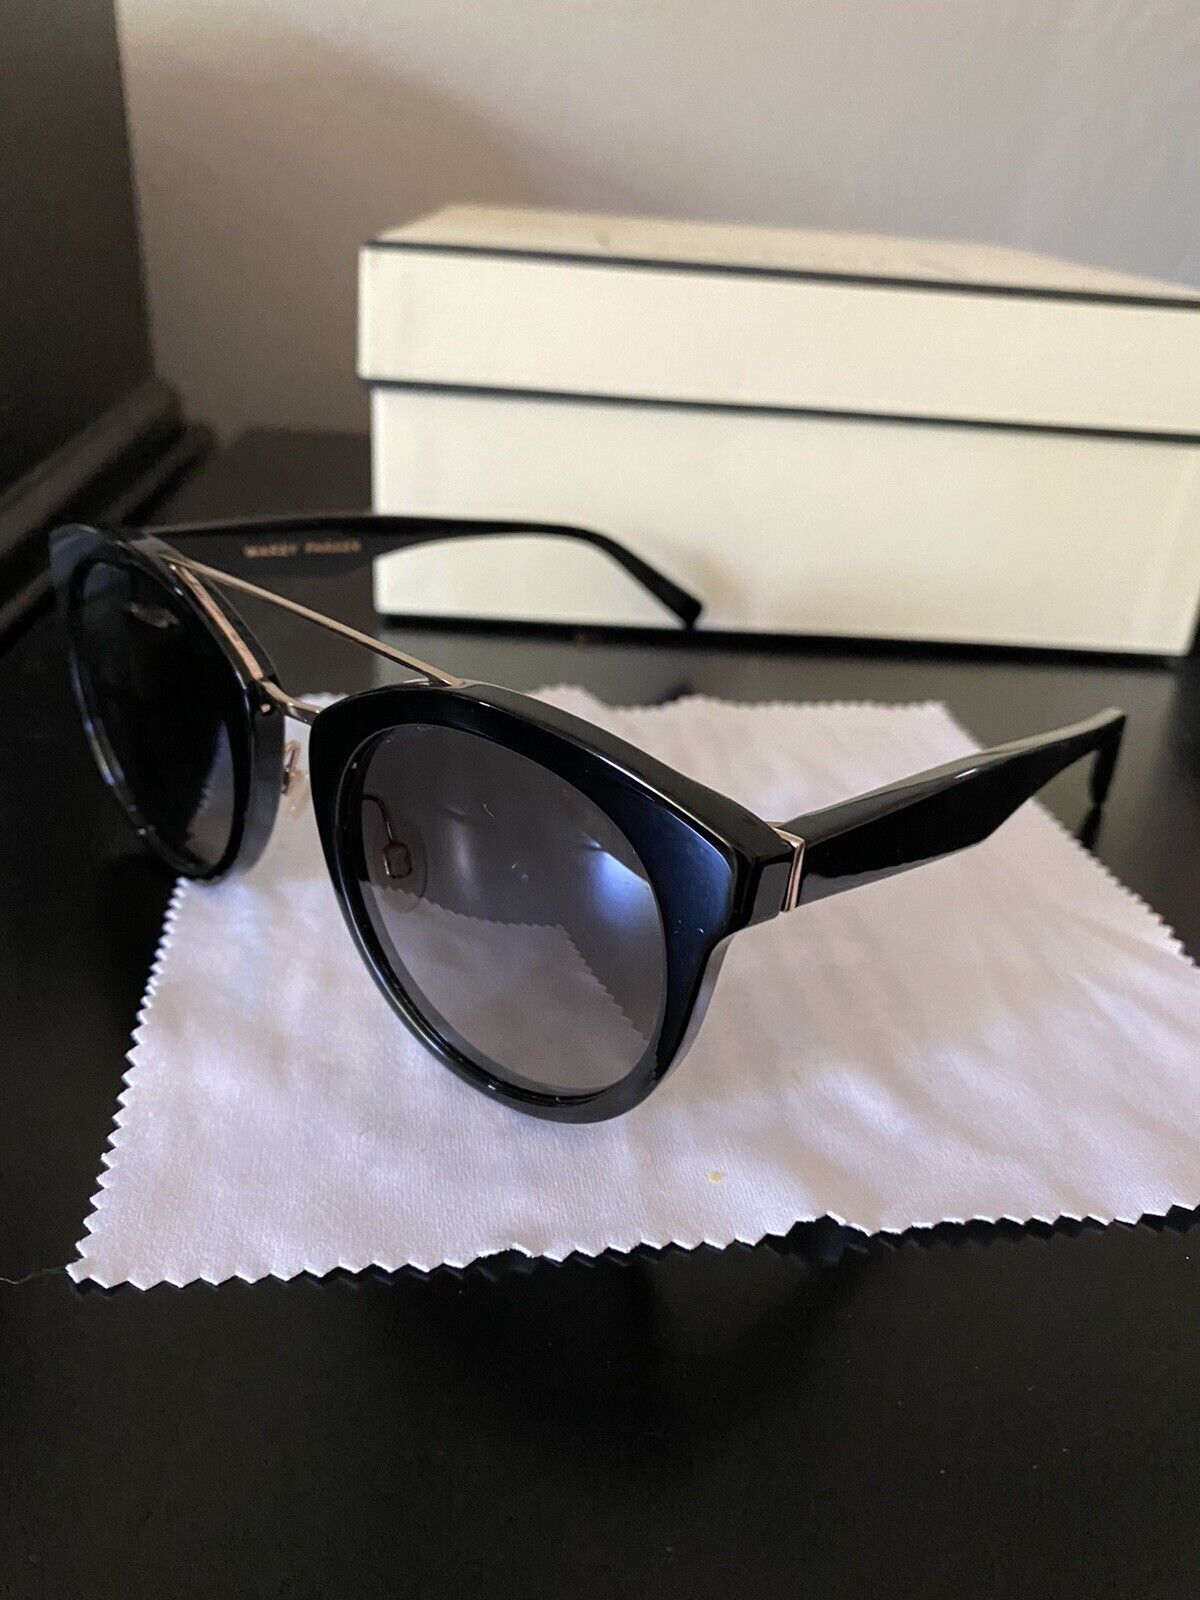 Warby Parker Winnie Sunglasses (made In Italy) - image 5